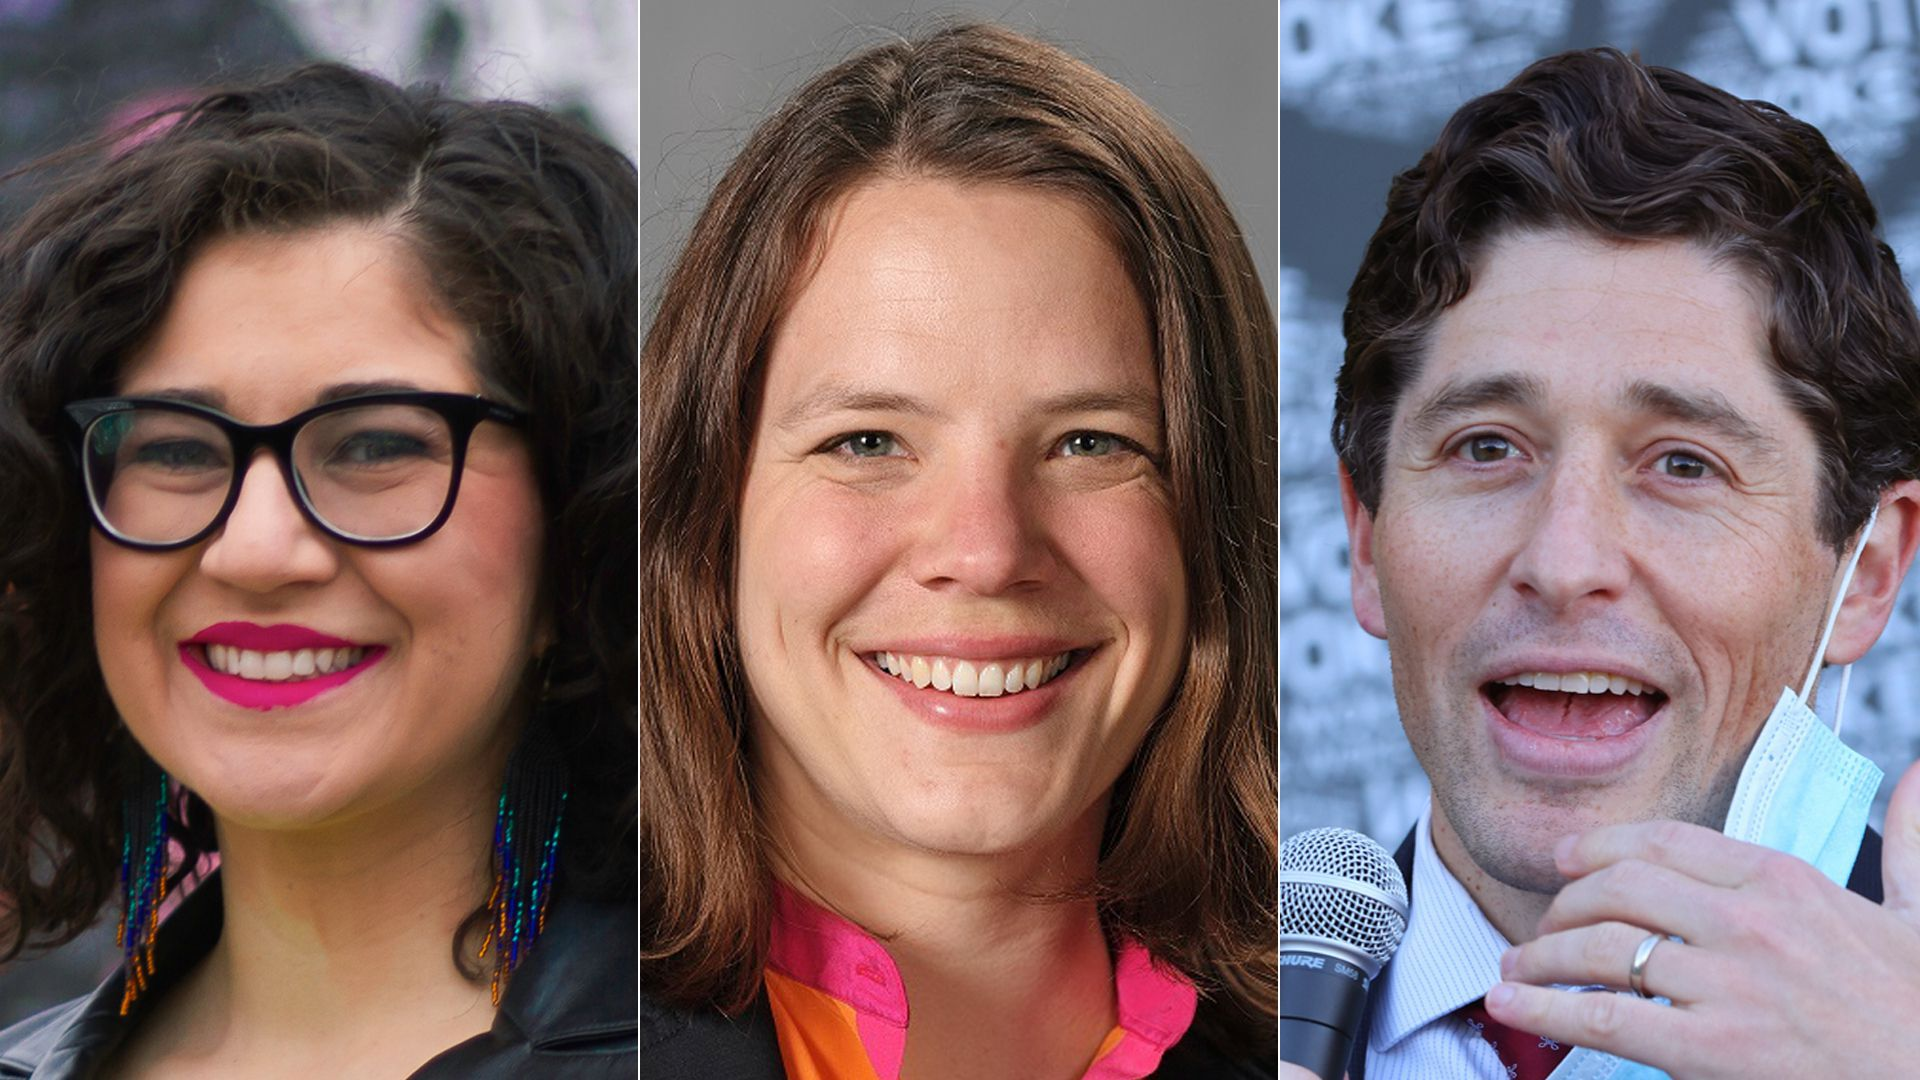 Sheila Nezhad (left) and Kate Knuth (center) are challenging Minneapolis Mayor Jacob Frey (right).